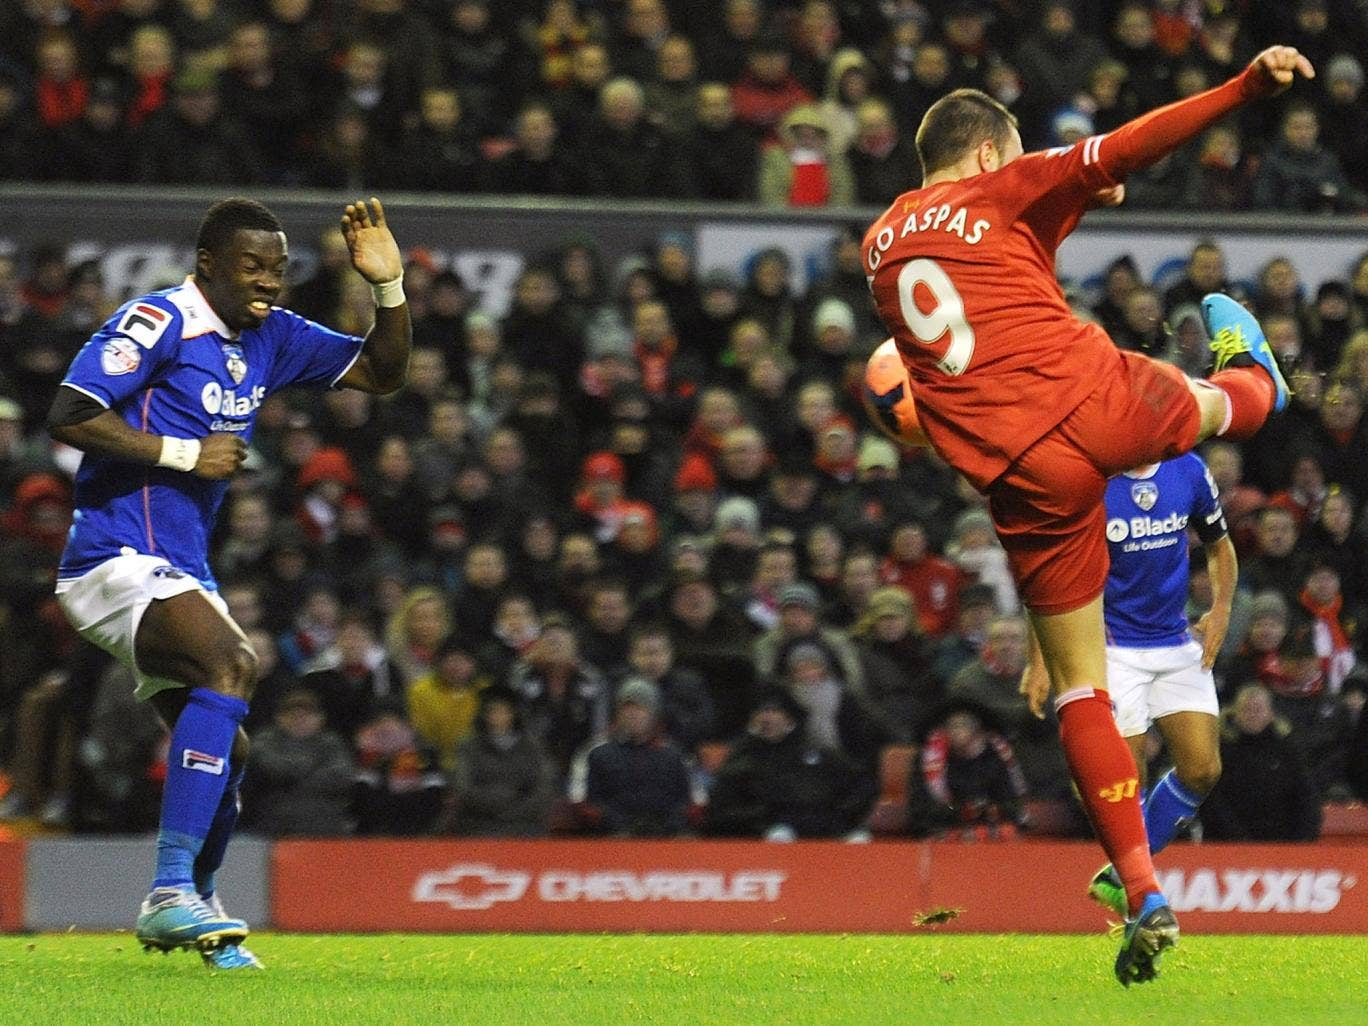 Liverpool's Iago Aspas scores the first goal during their FA Cup Third Round match against Oldham Athletic